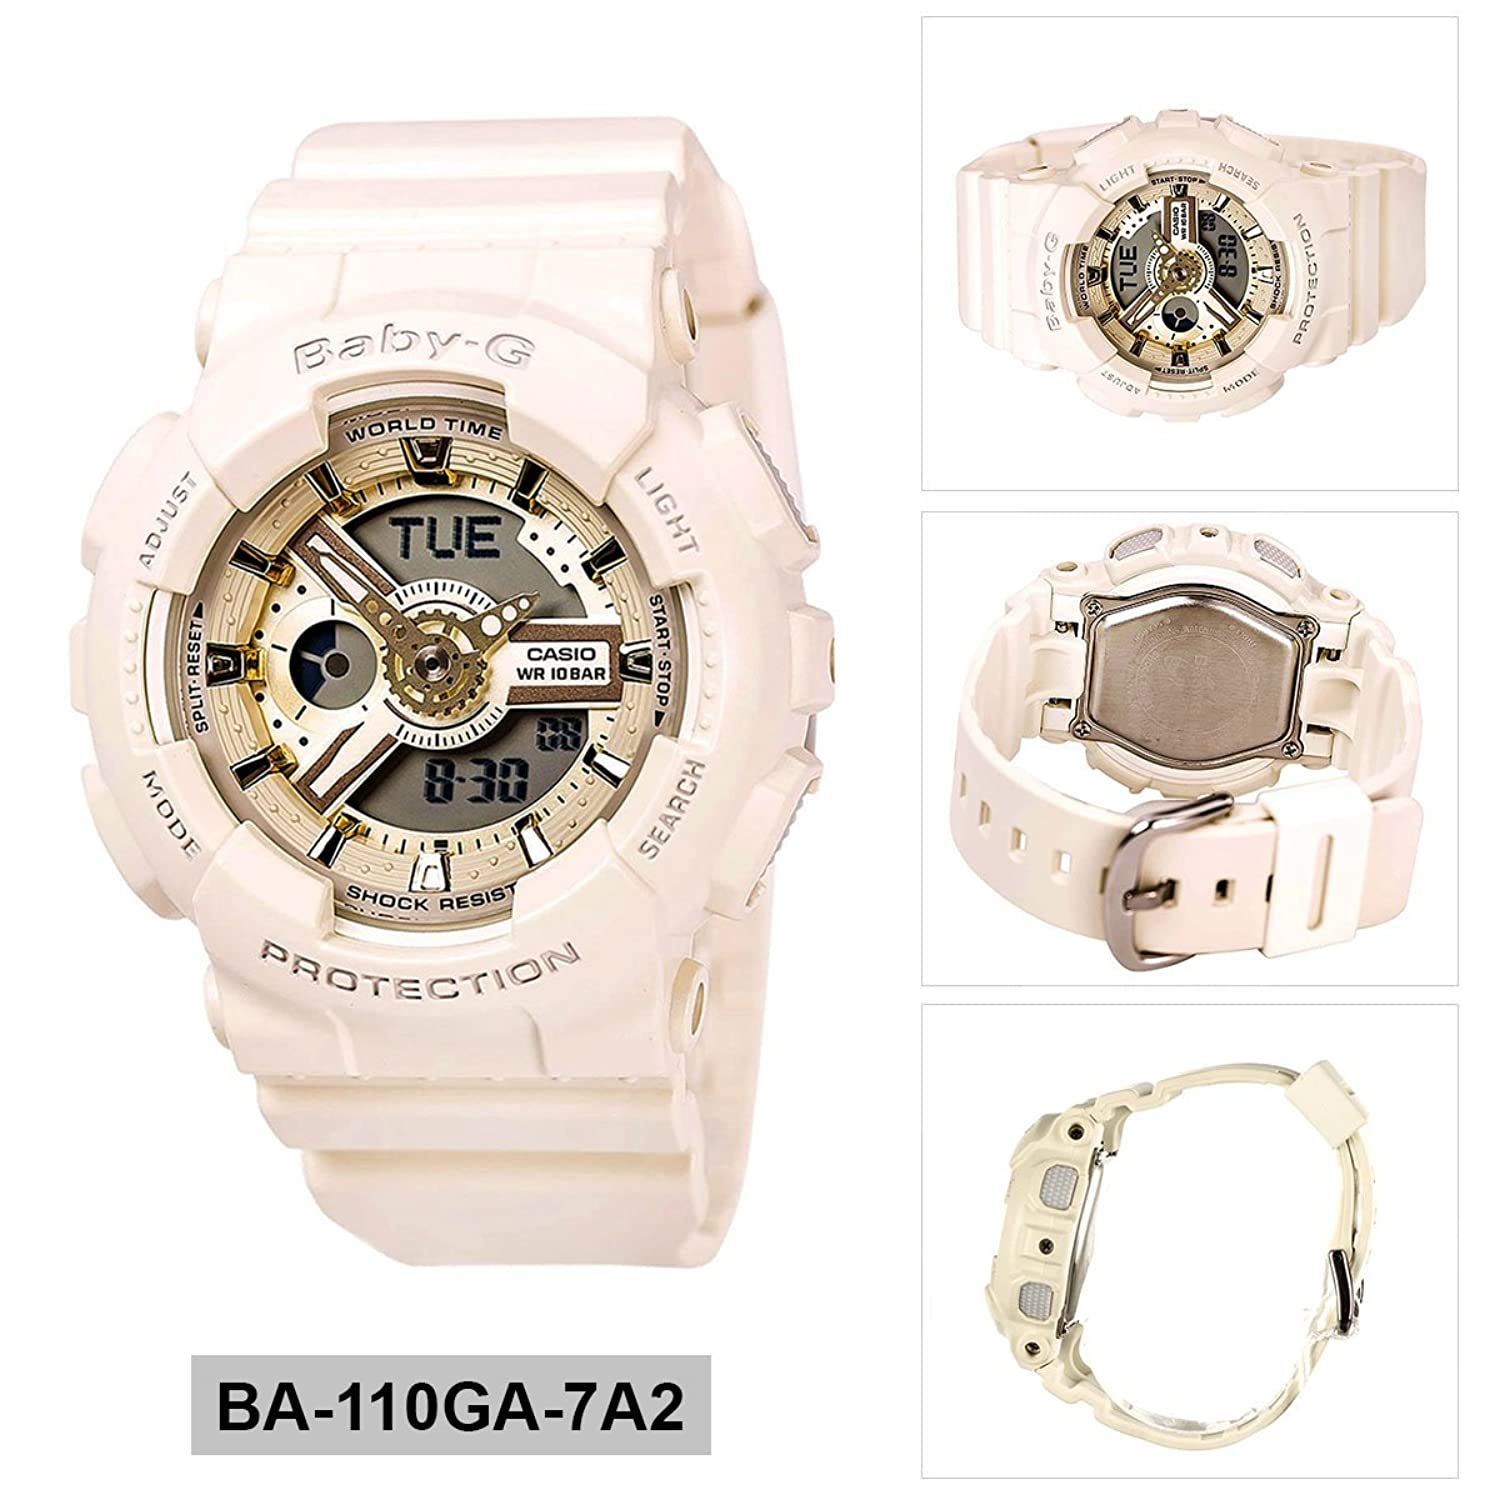 G Shock Ba 125 Series Pink One Size Watches Casio Gma S120mf 7a2